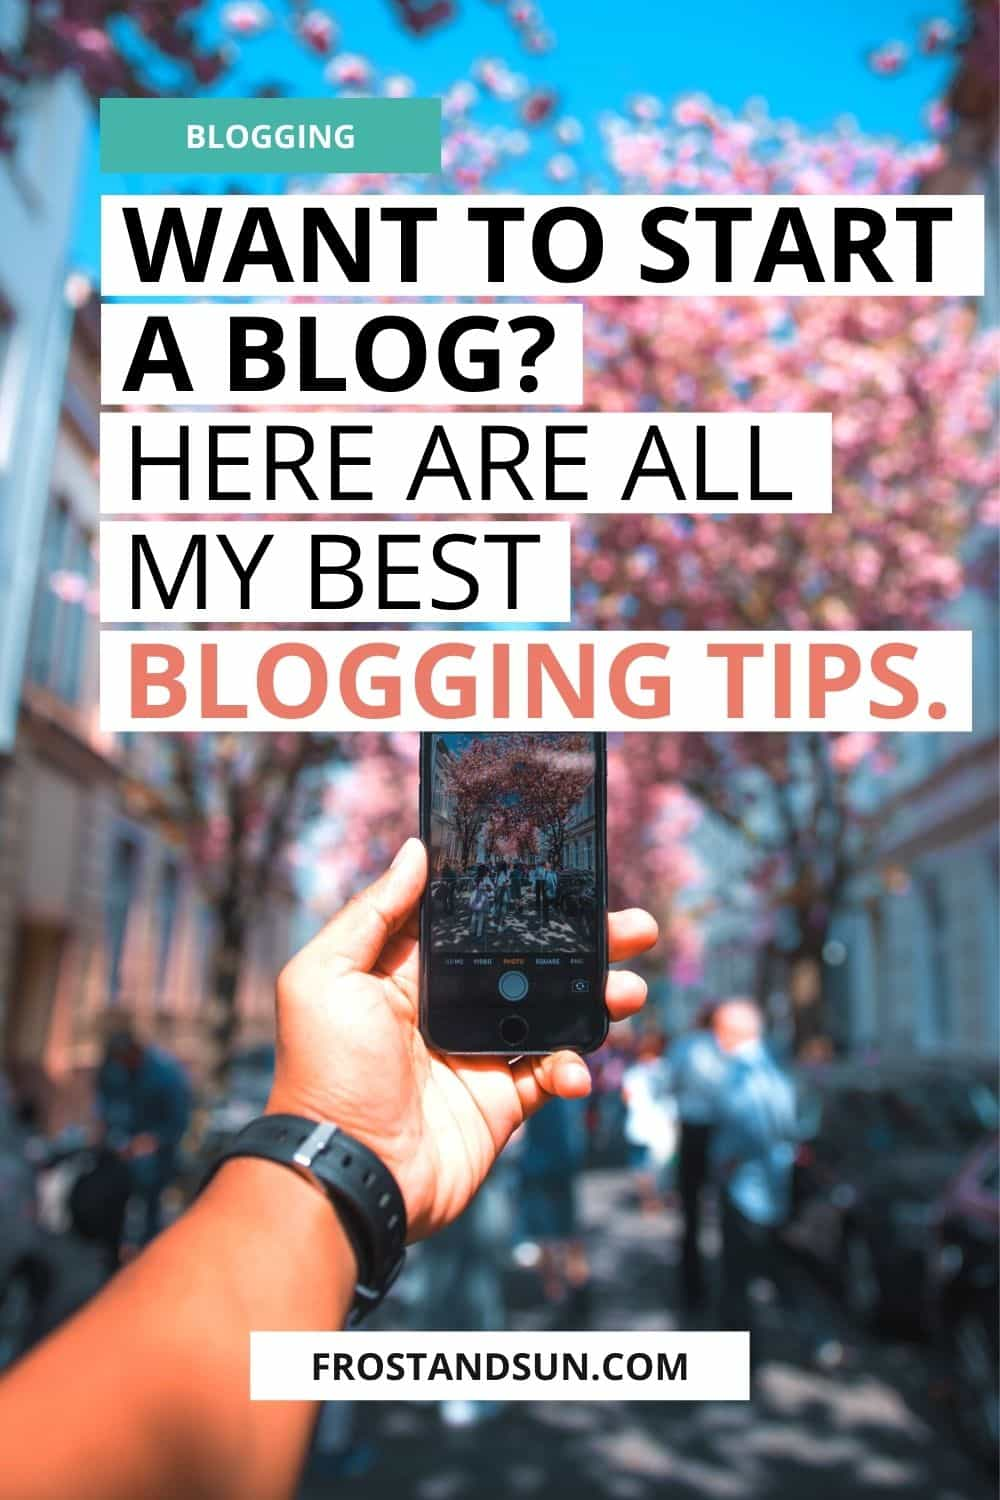 Blogging Resources & Tips